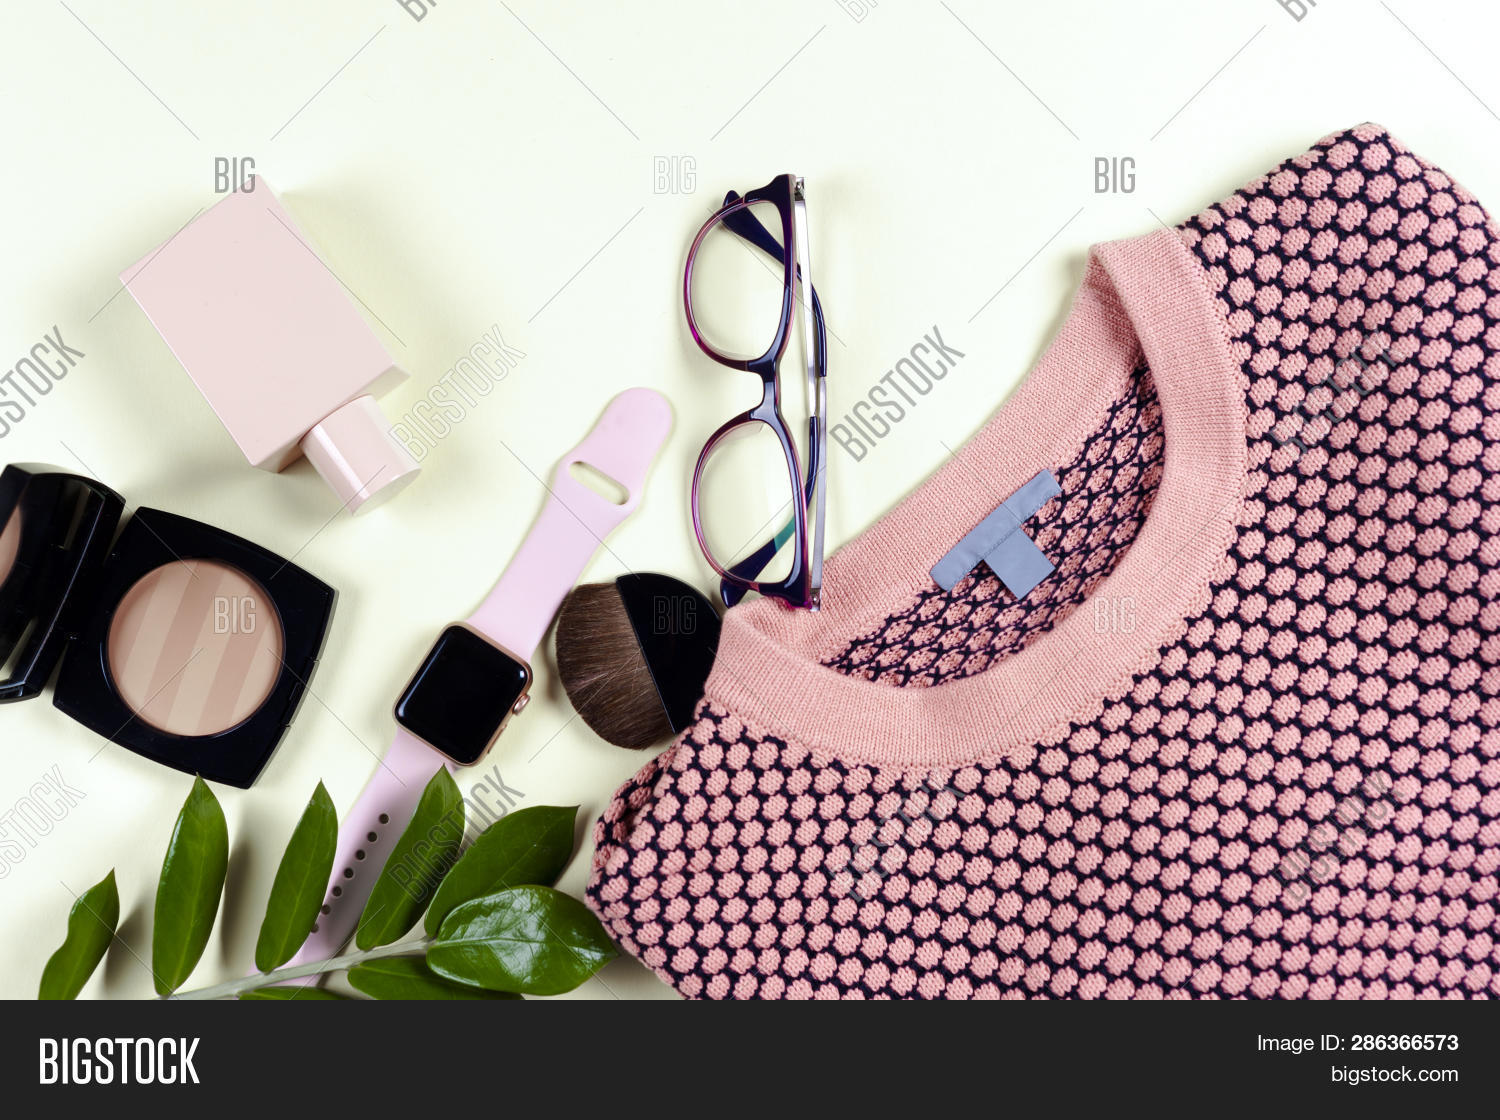 68fec0f7 Fashion women clothing set and accessories. Vanilla Pastel colors. Summer  street style. Trendy glasses, top, perfume, powder, watches, flowers.  Summer lady.